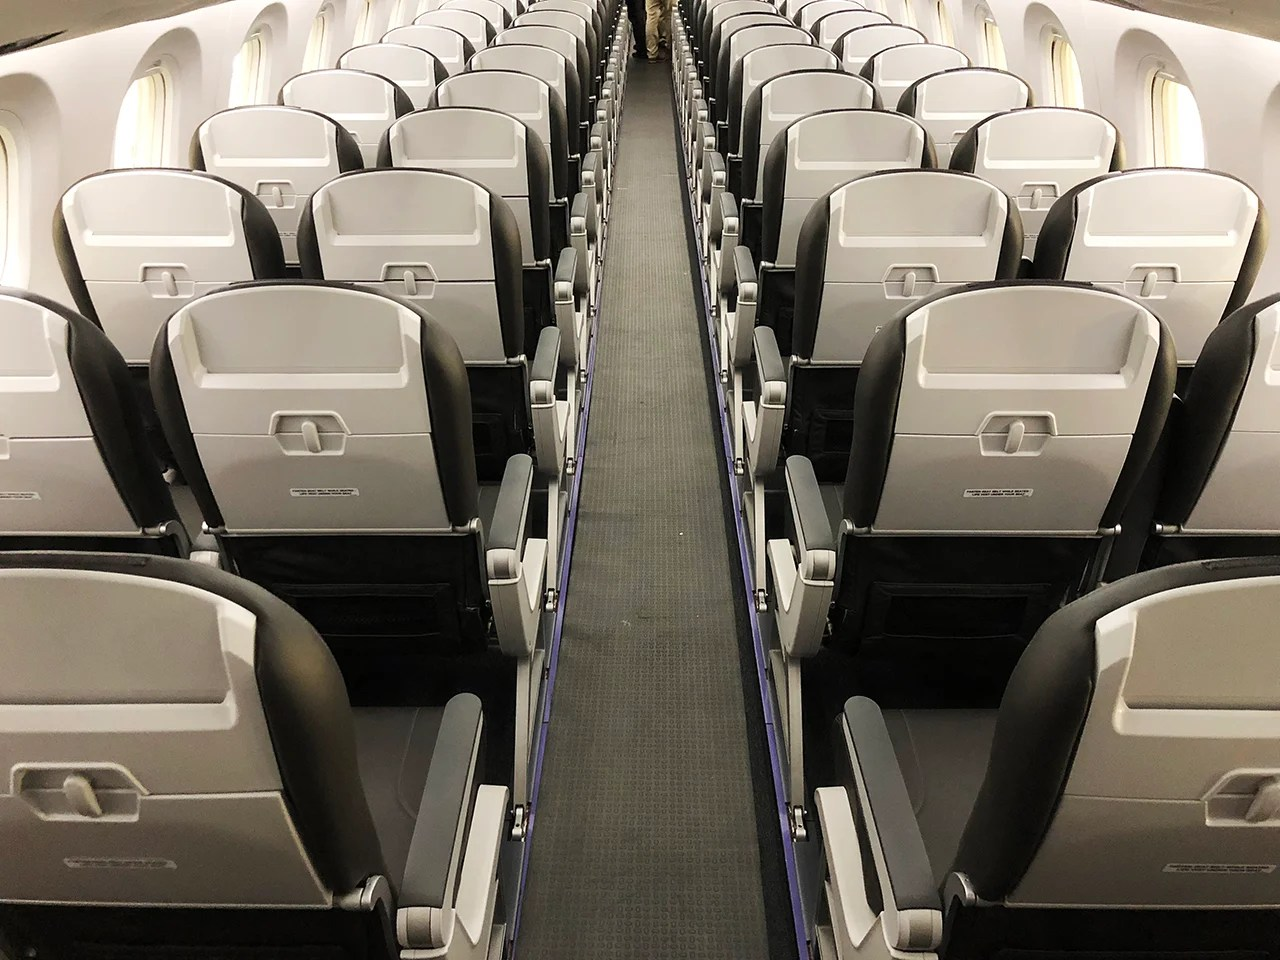 So The Carrier Decided To Optimize Space Inside Aircraft With 114 Seats Presumably Given Short Duration Of Many Flights Its A Tight Fit